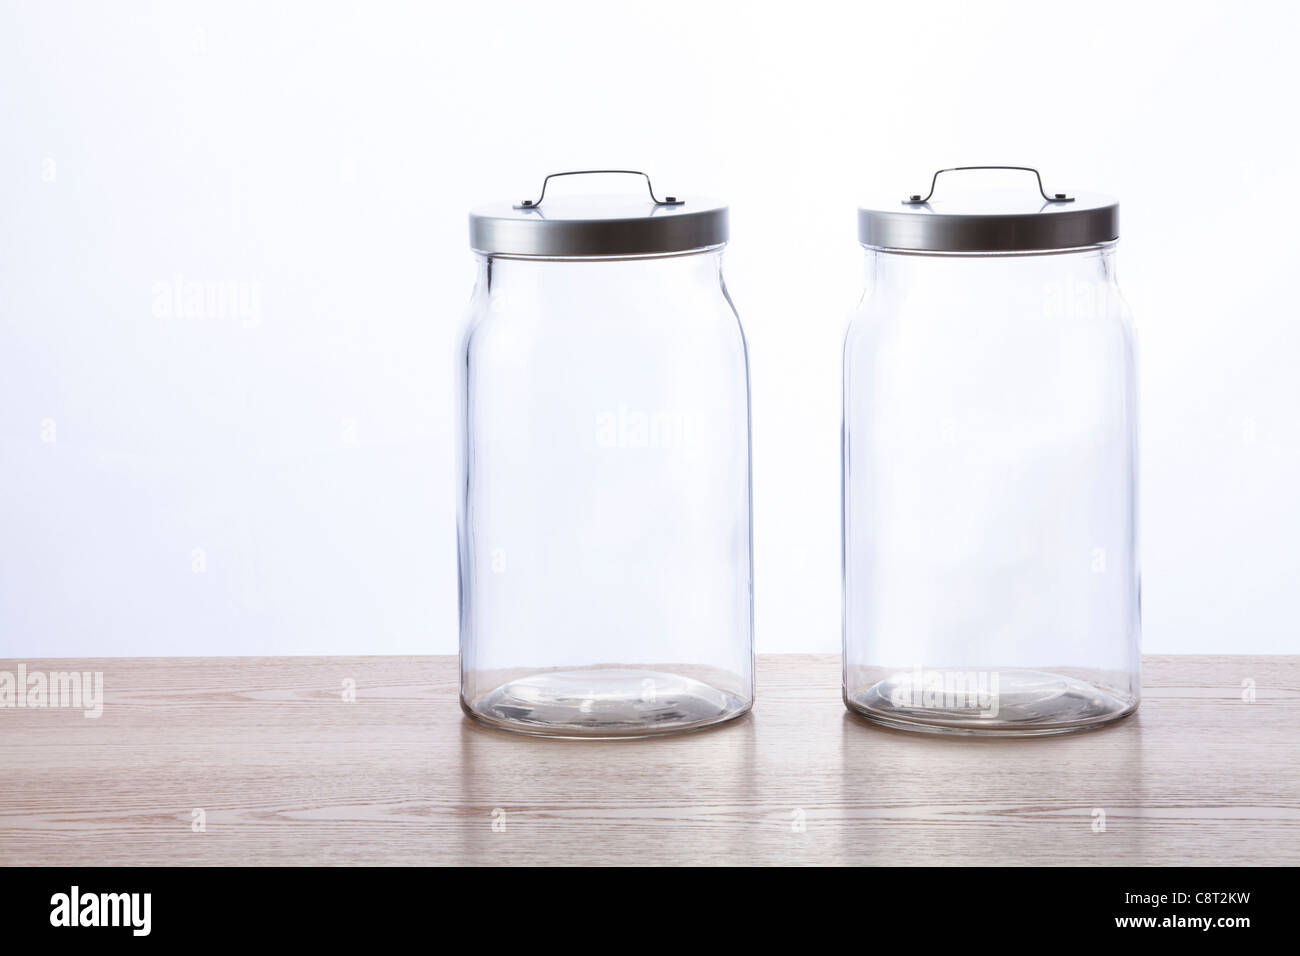 Two empty glass jar with lid closed against white background - Stock Image